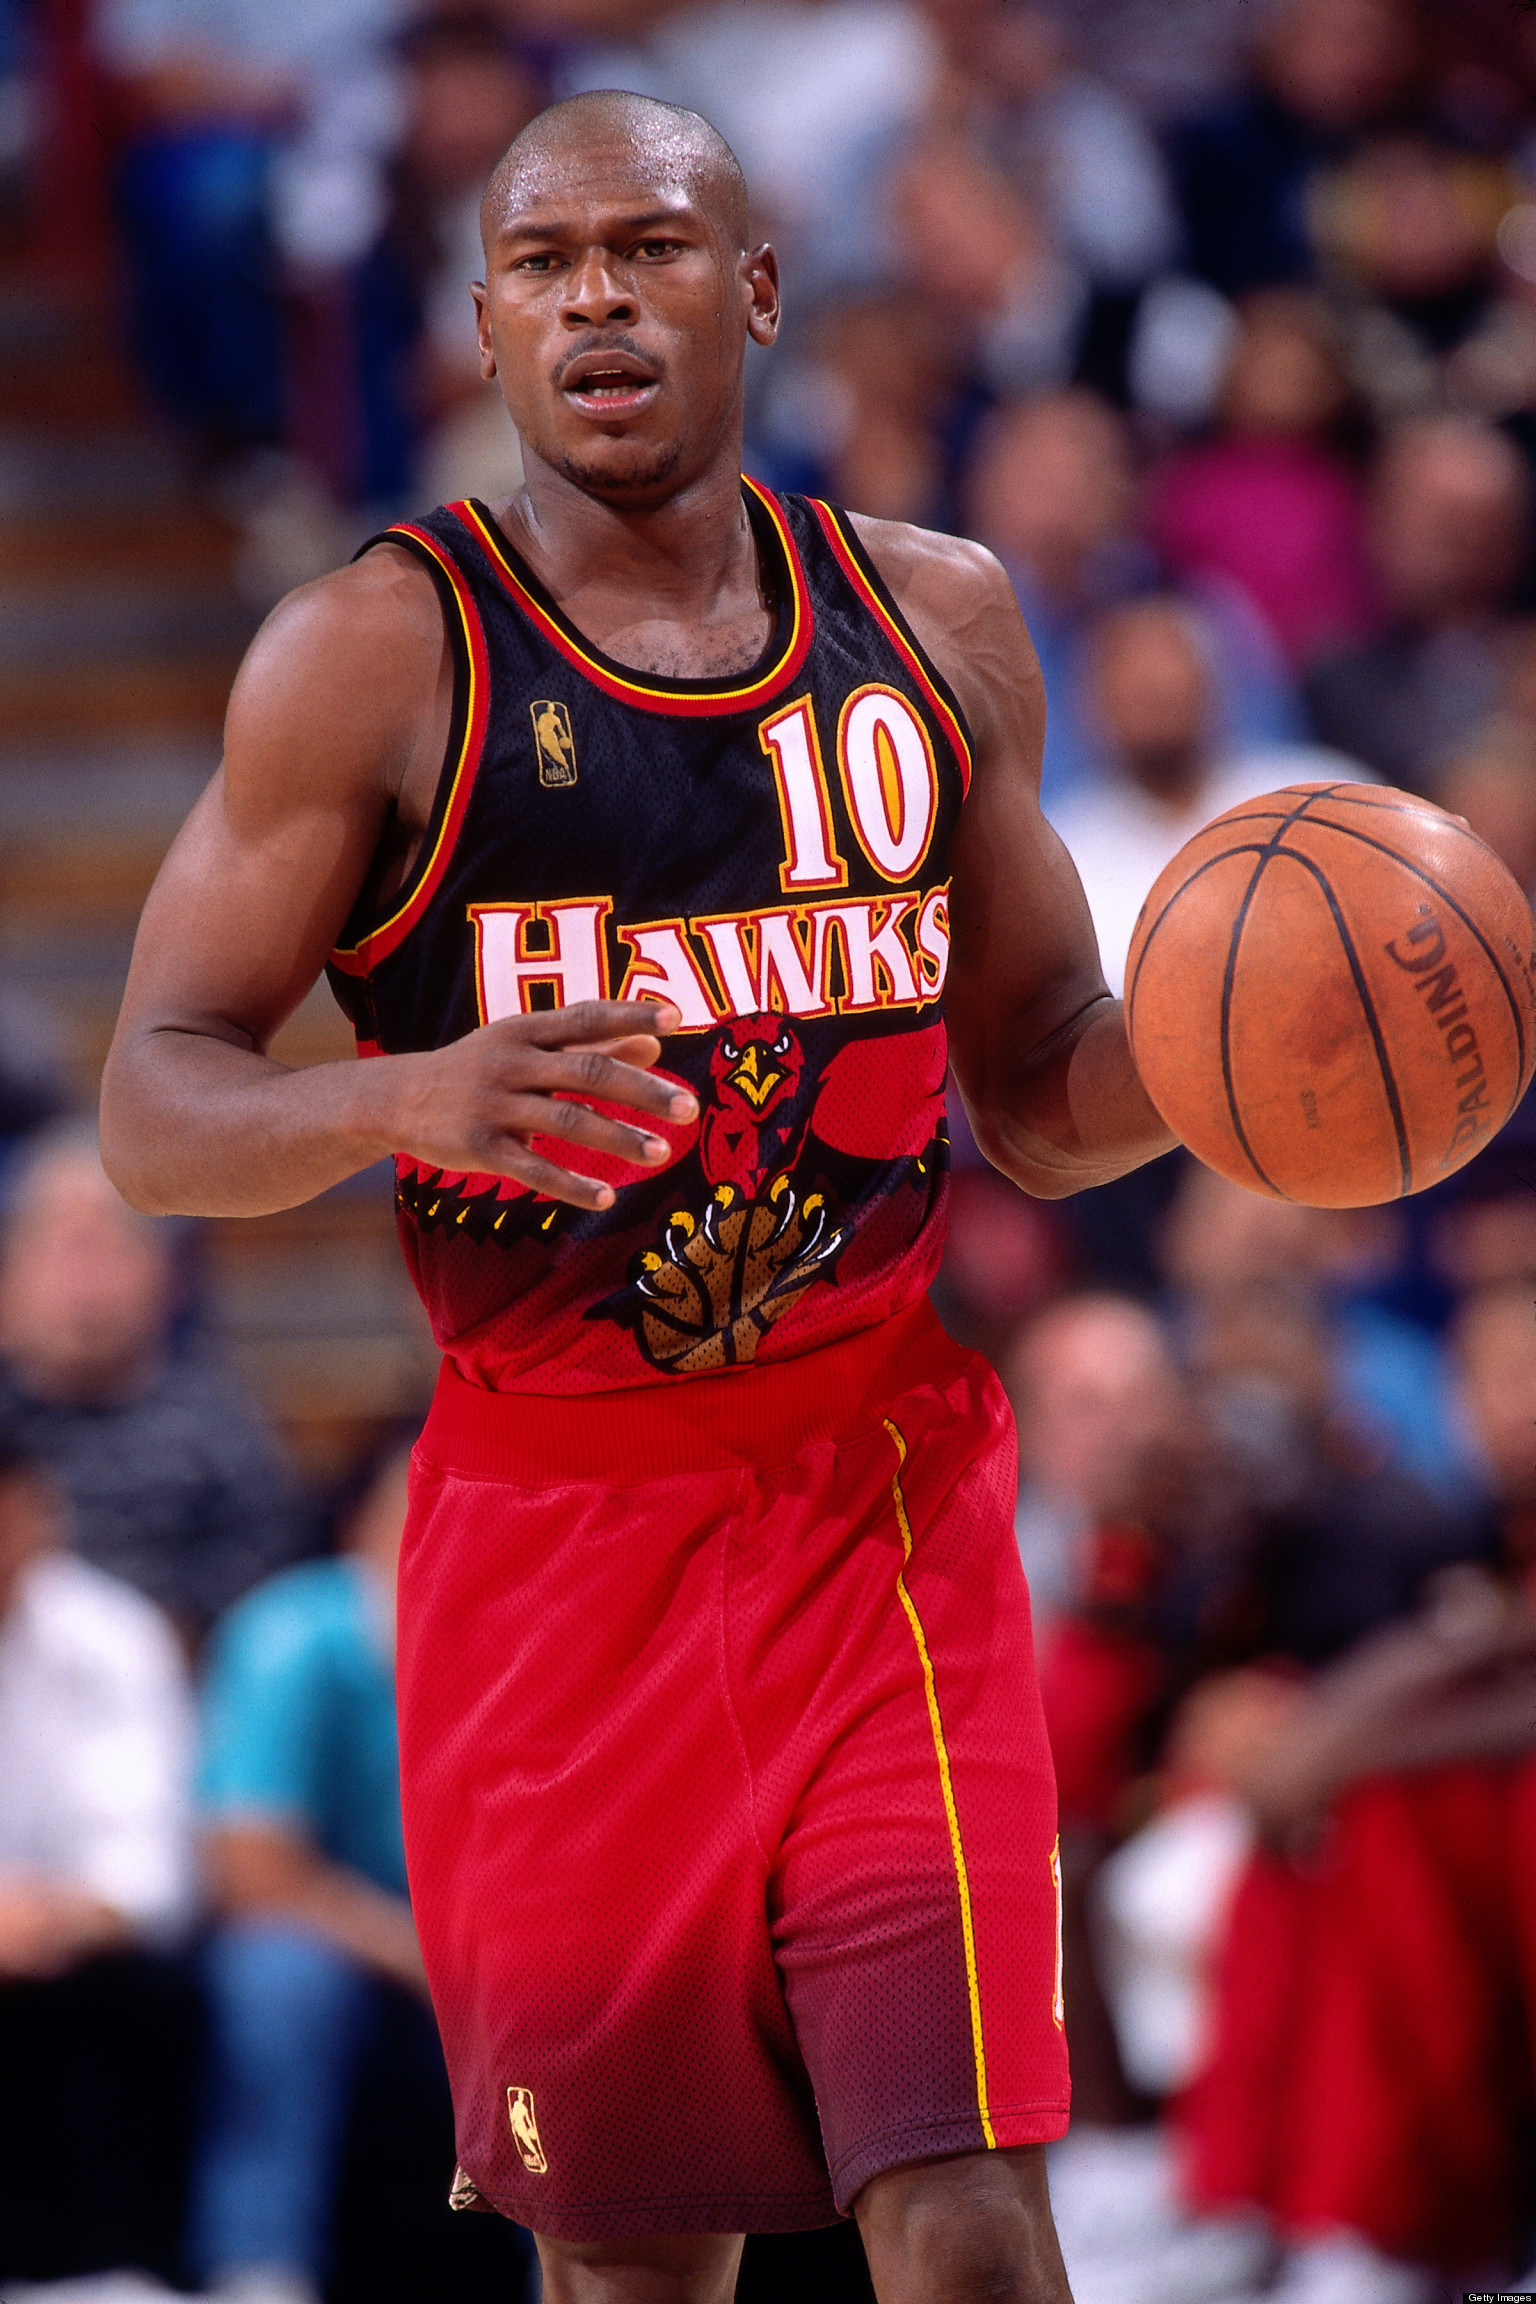 Mookie Blaylock Life Support After Car Crash POLICE [UPDATED